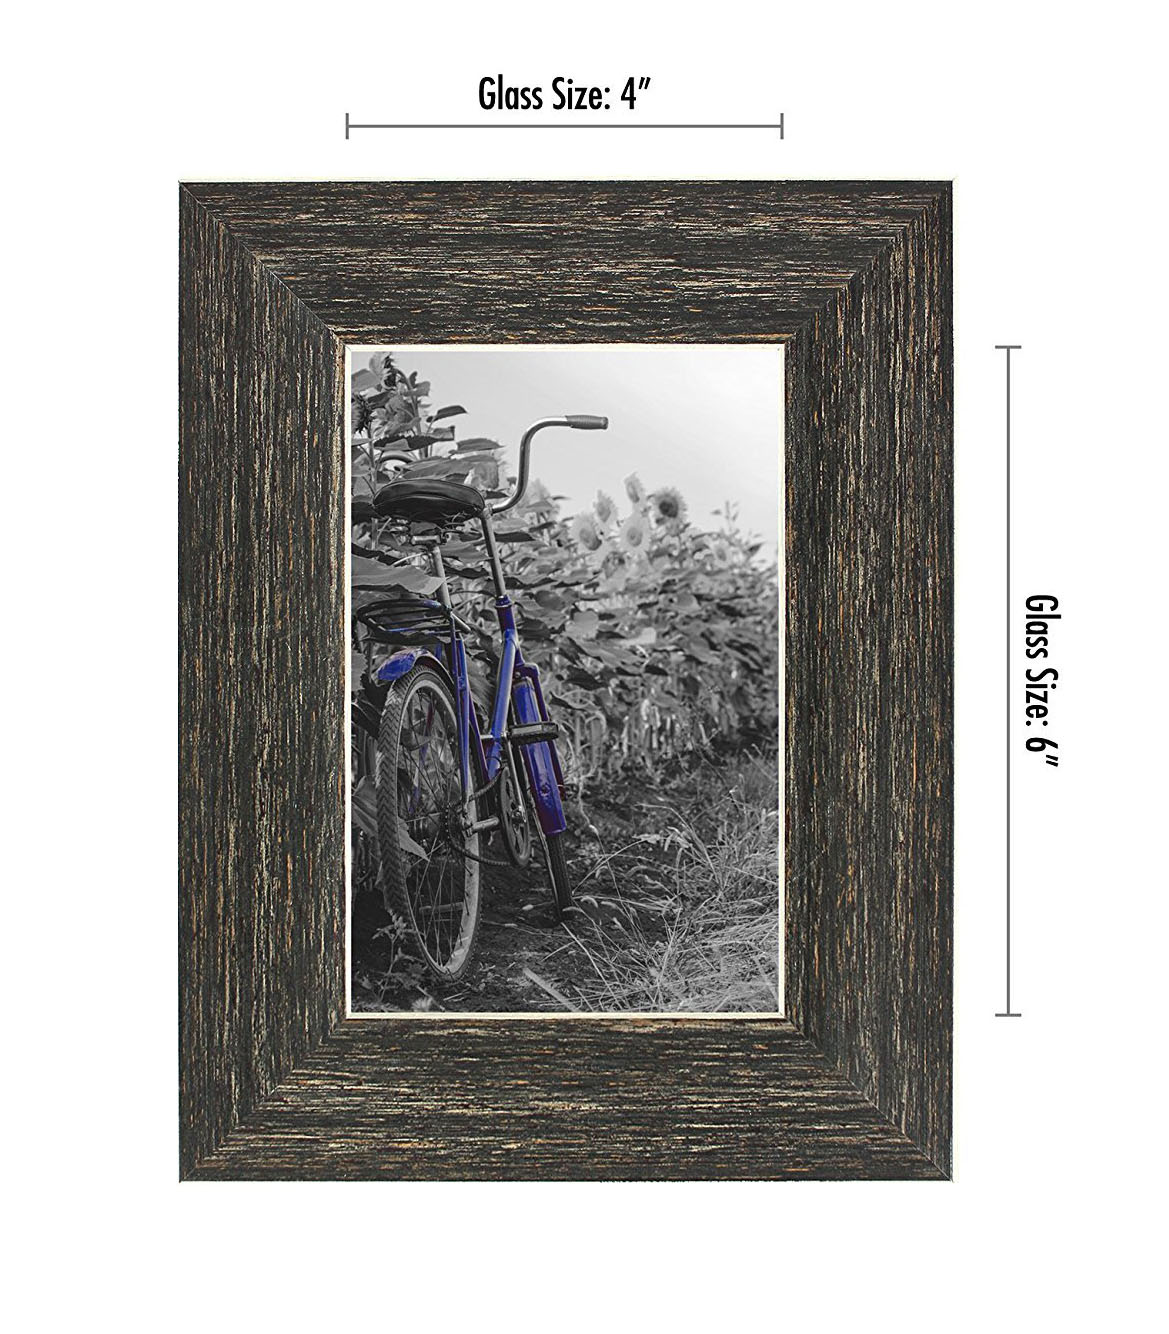 miniature 15 - Americanflat Picture Frame 4x6 5x7 8x10 (2) Pack Rustic Wood Wall or Tabletop